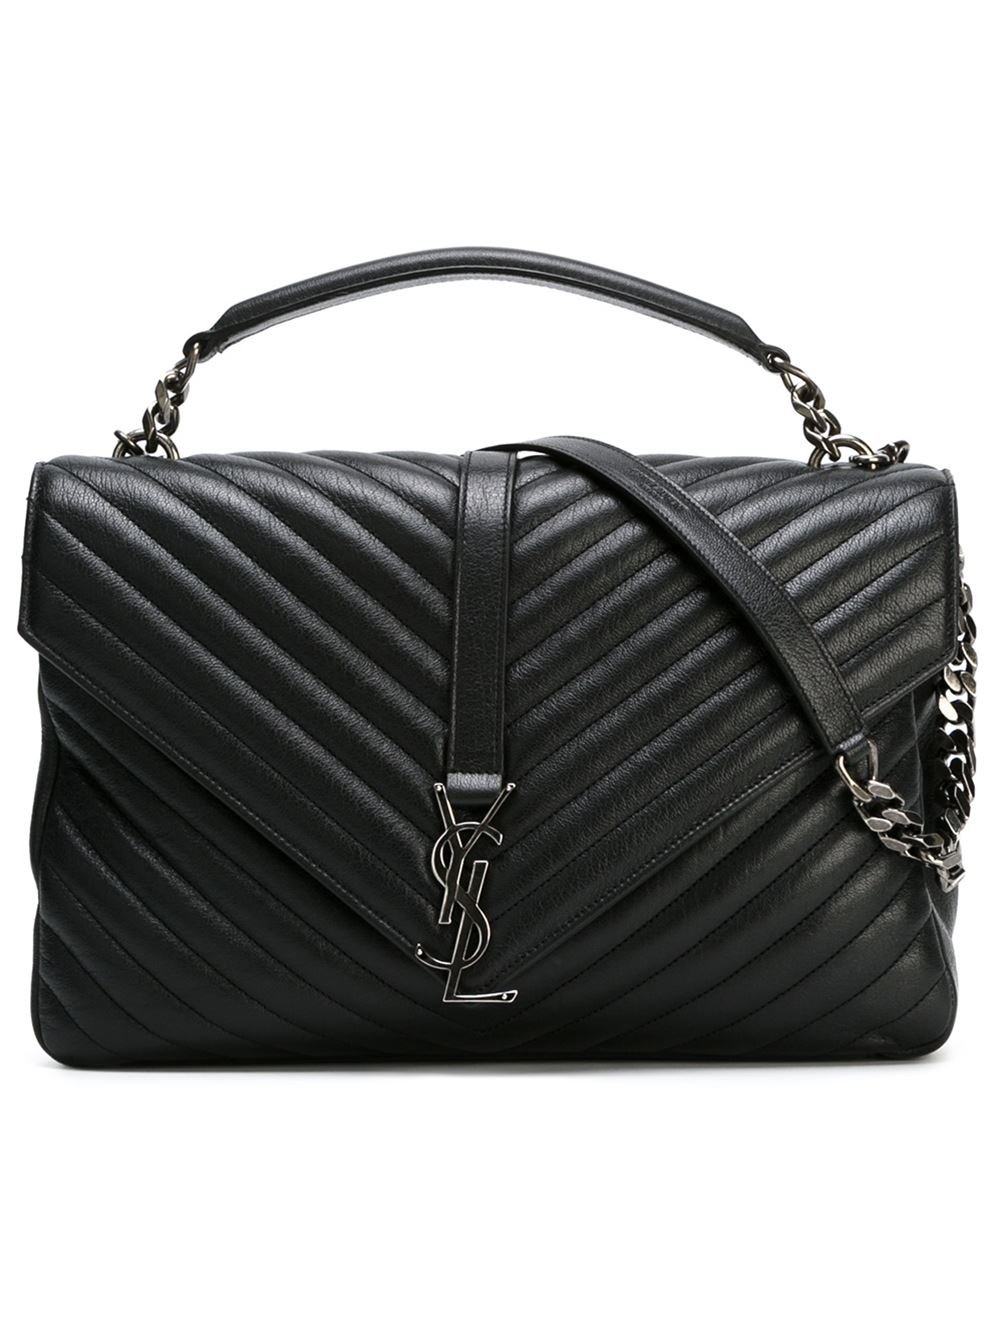 saint laurent large coll ge monogram leather shoulder bag in black lyst. Black Bedroom Furniture Sets. Home Design Ideas